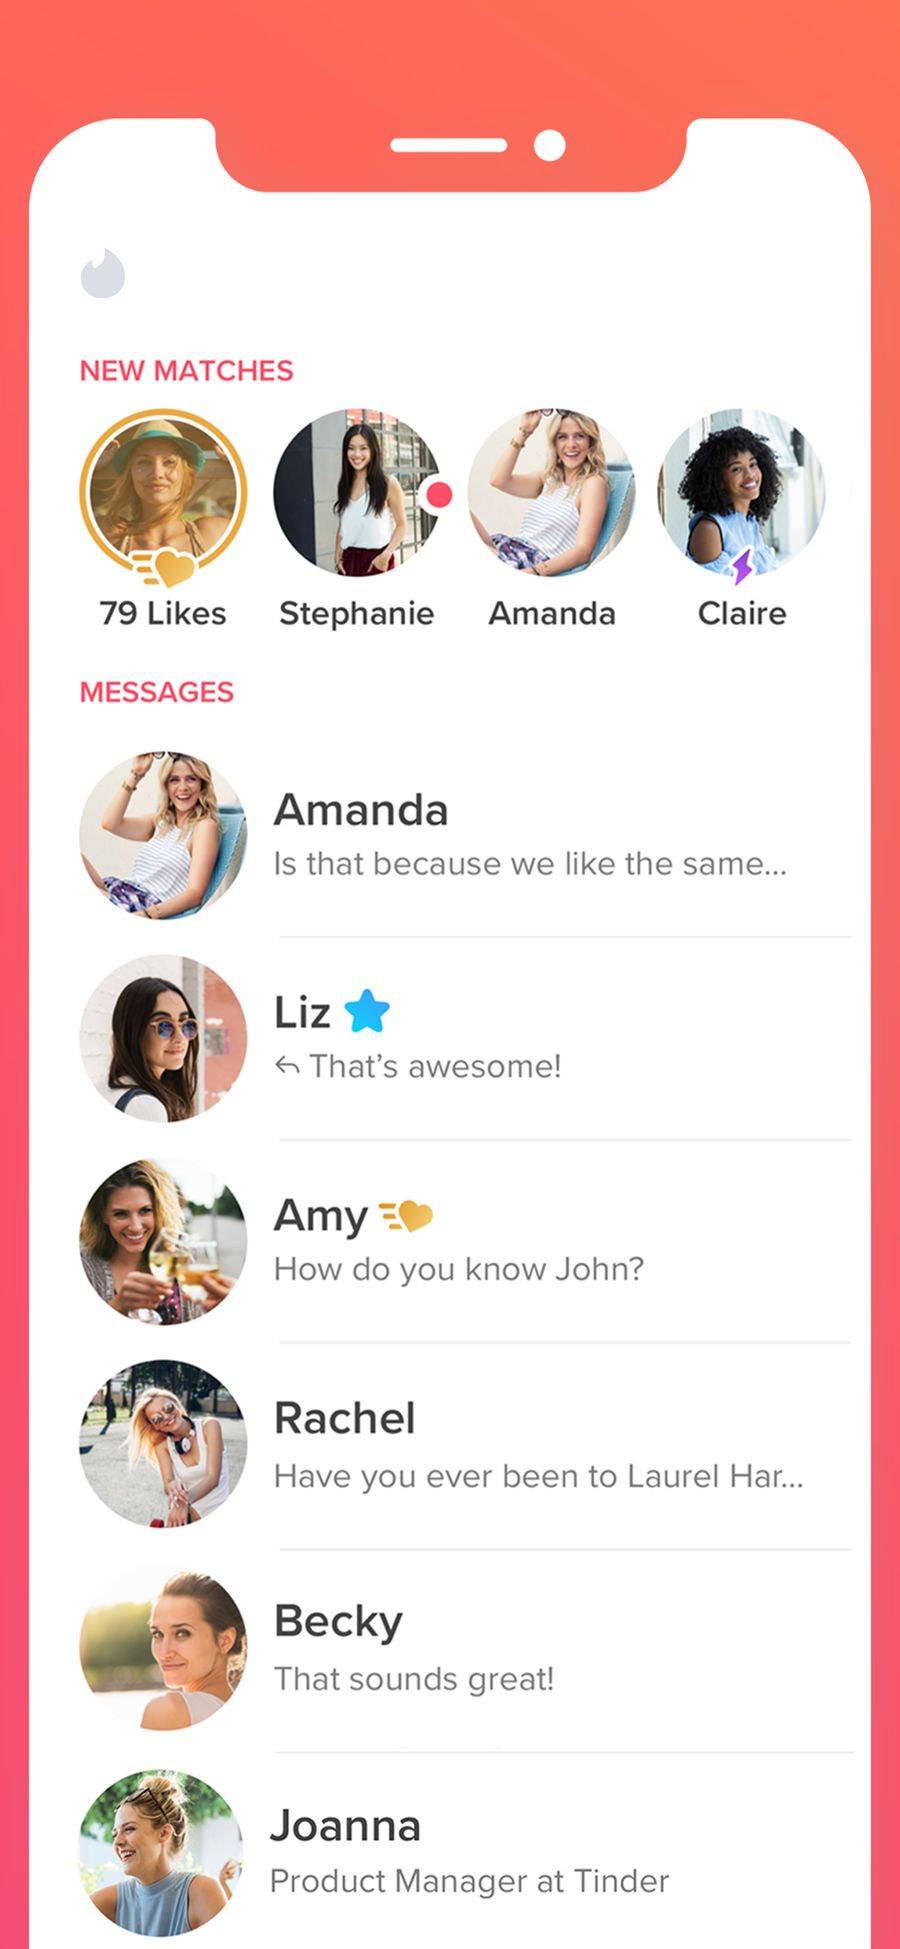 Tinder Tinder, App, Messages